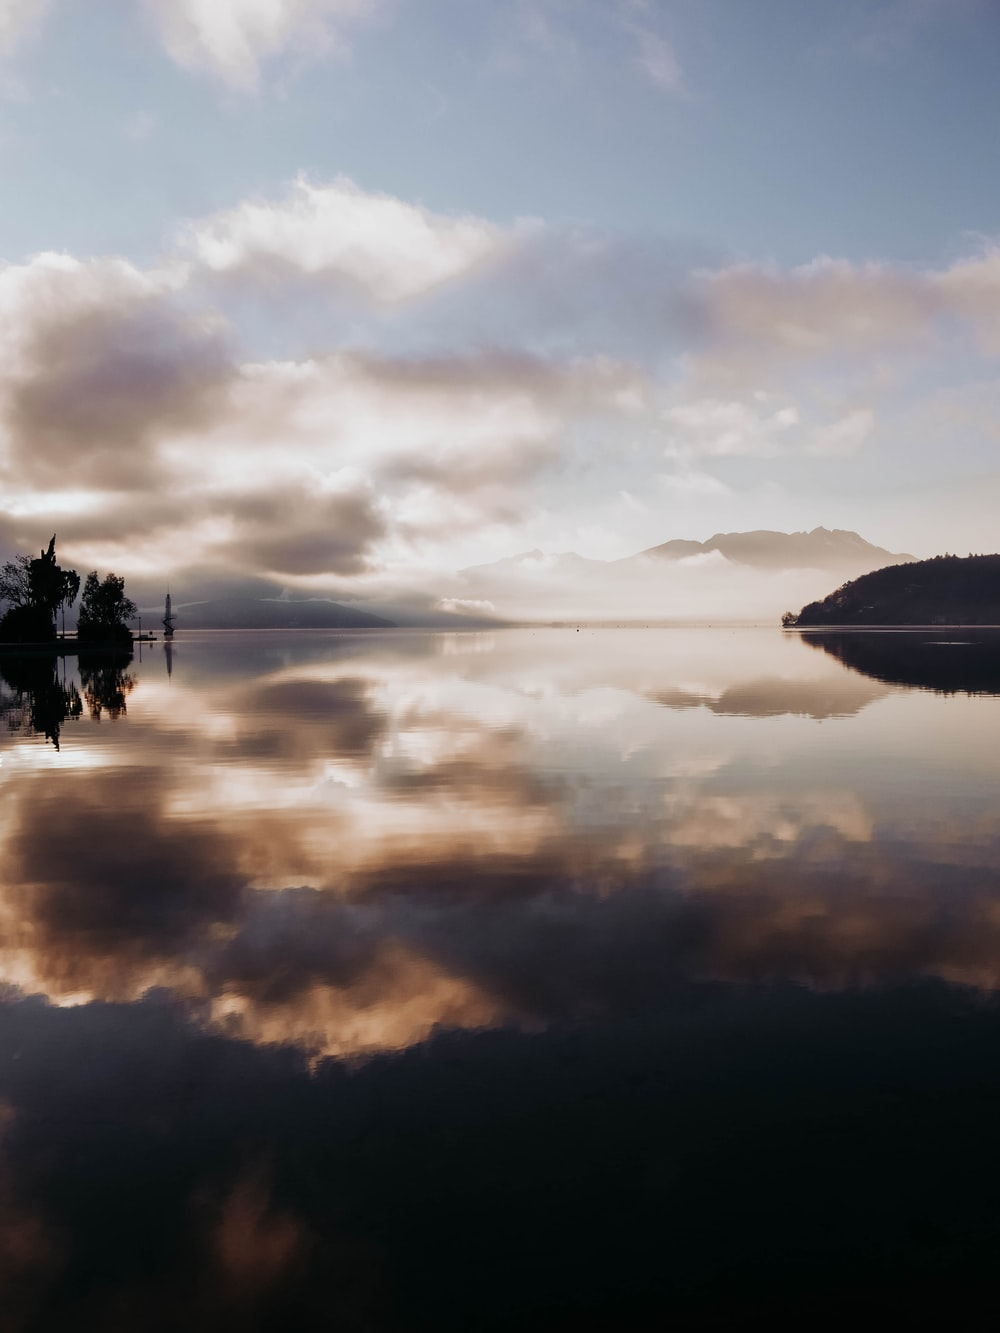 silhouette of boat on calm water under cloudy sky during daytime